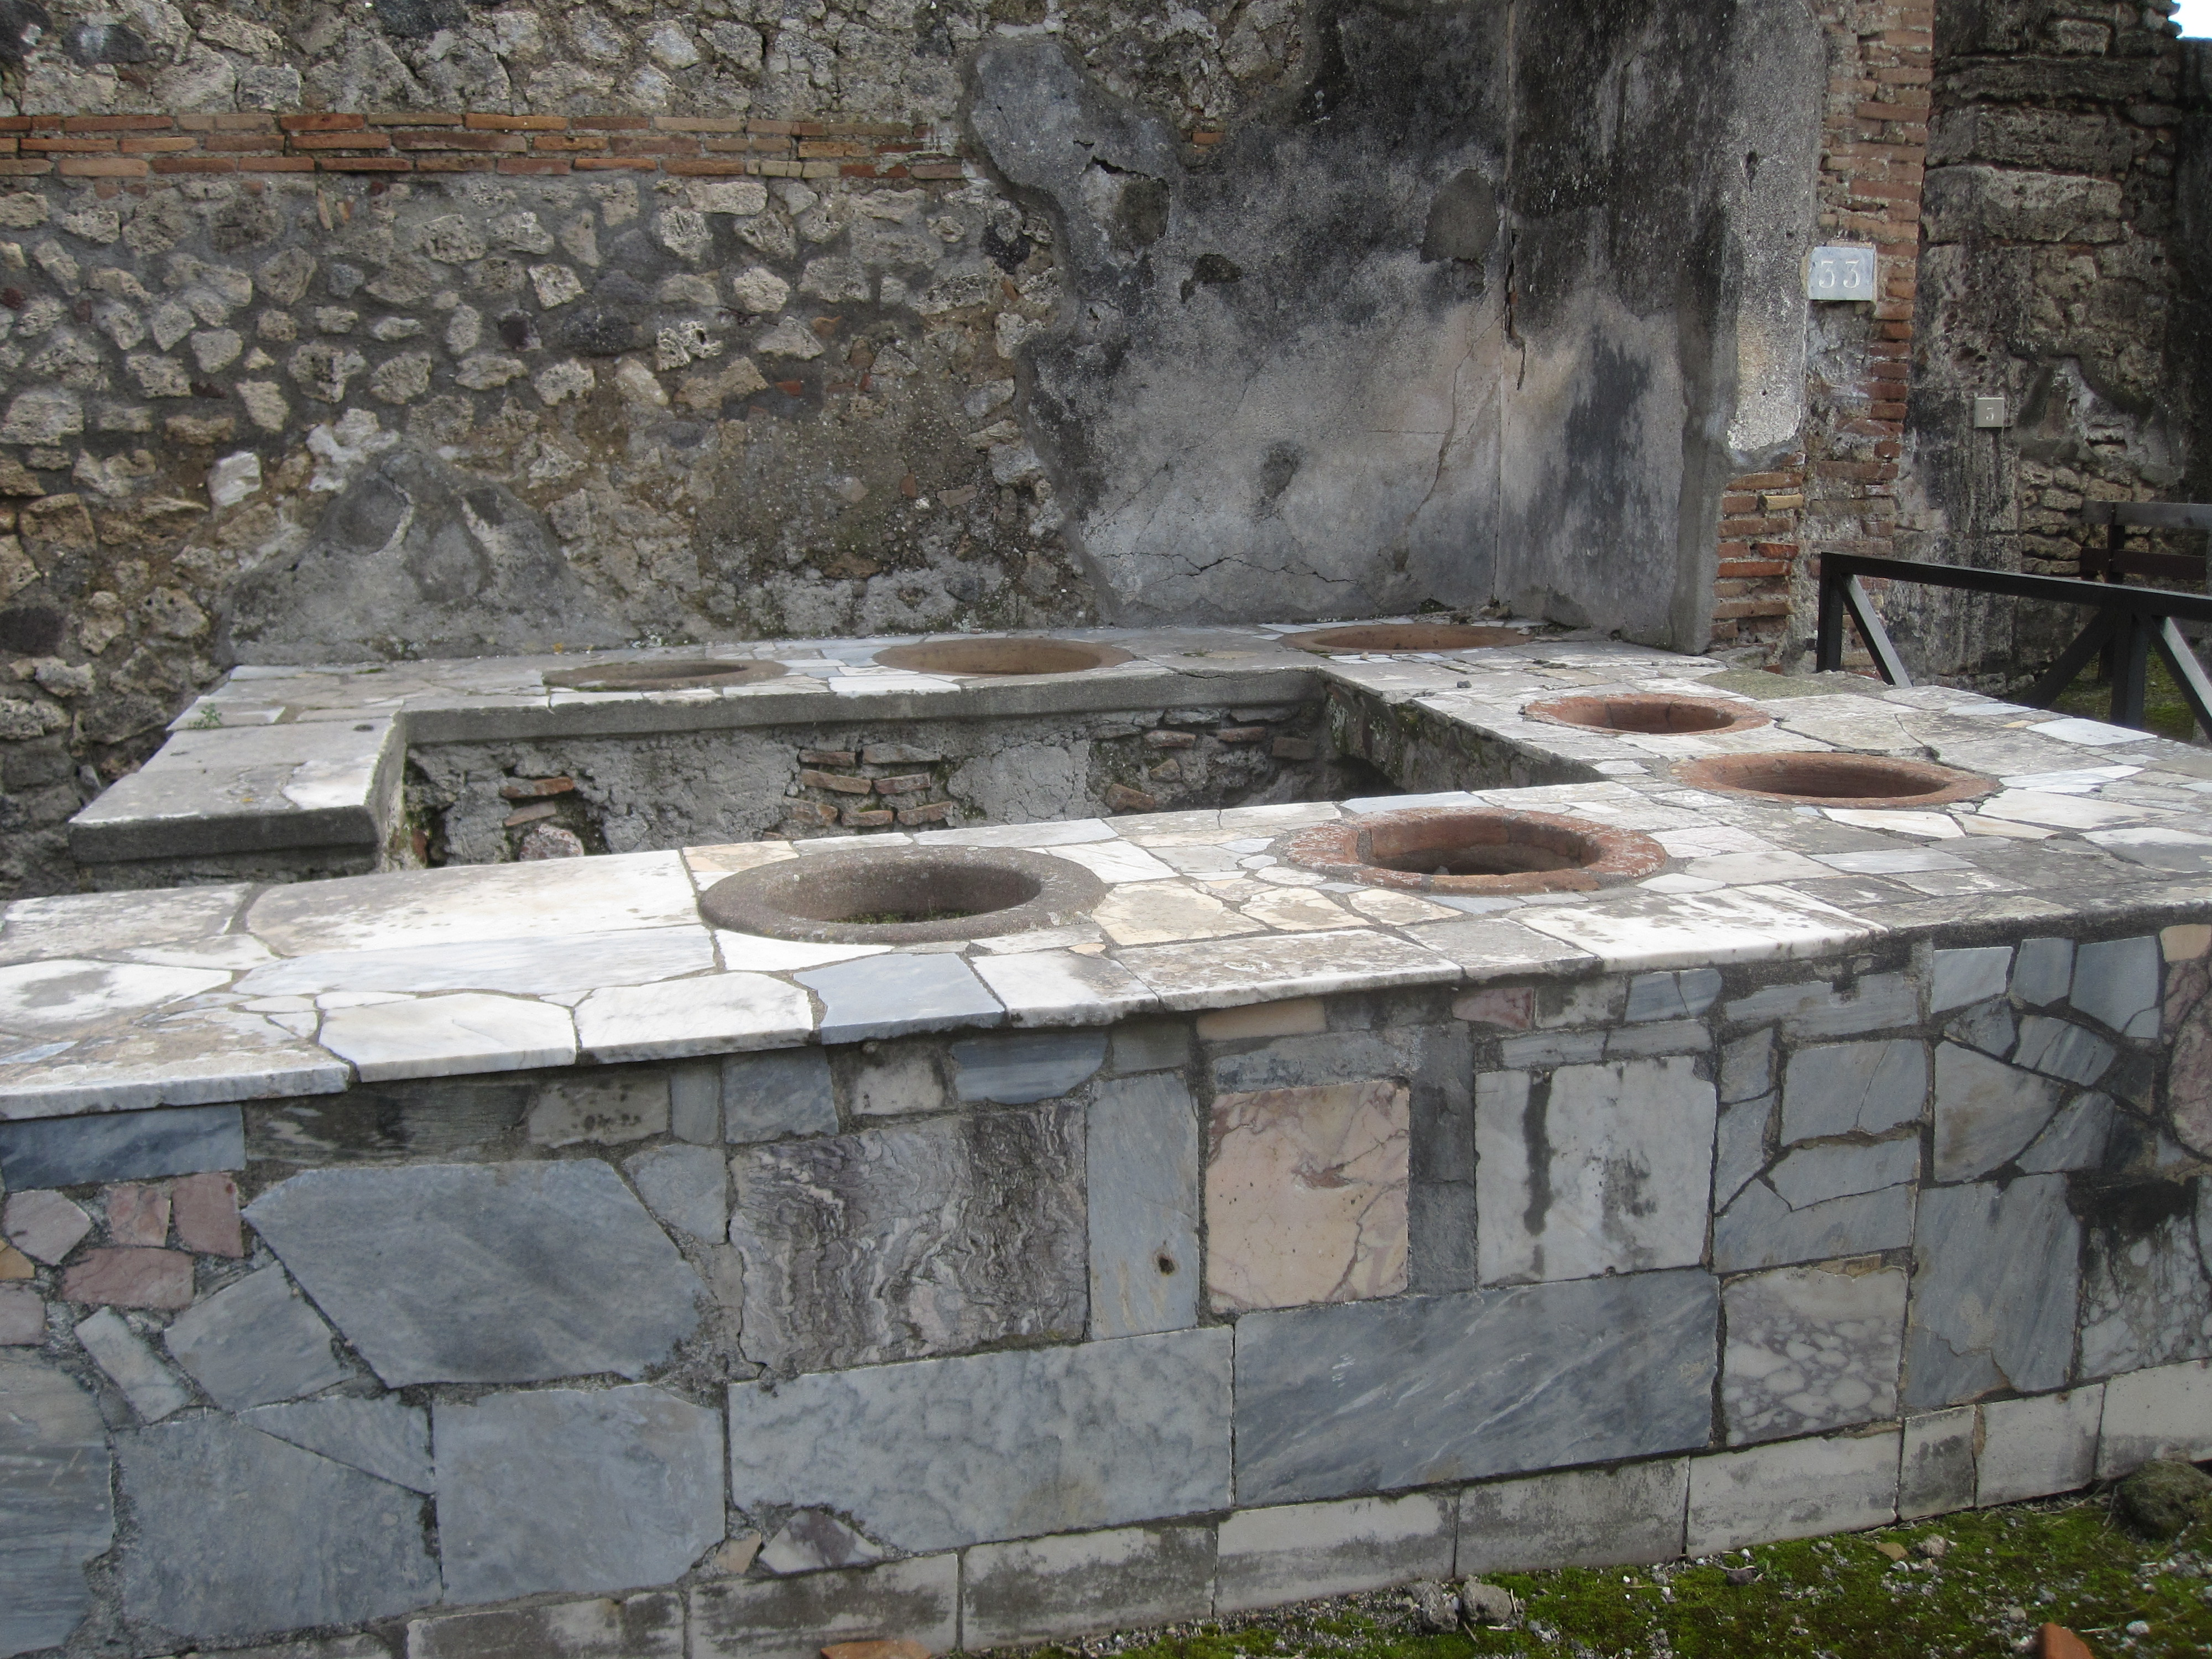 thermopylae counter, Pompeii Crystal King copyright 2010